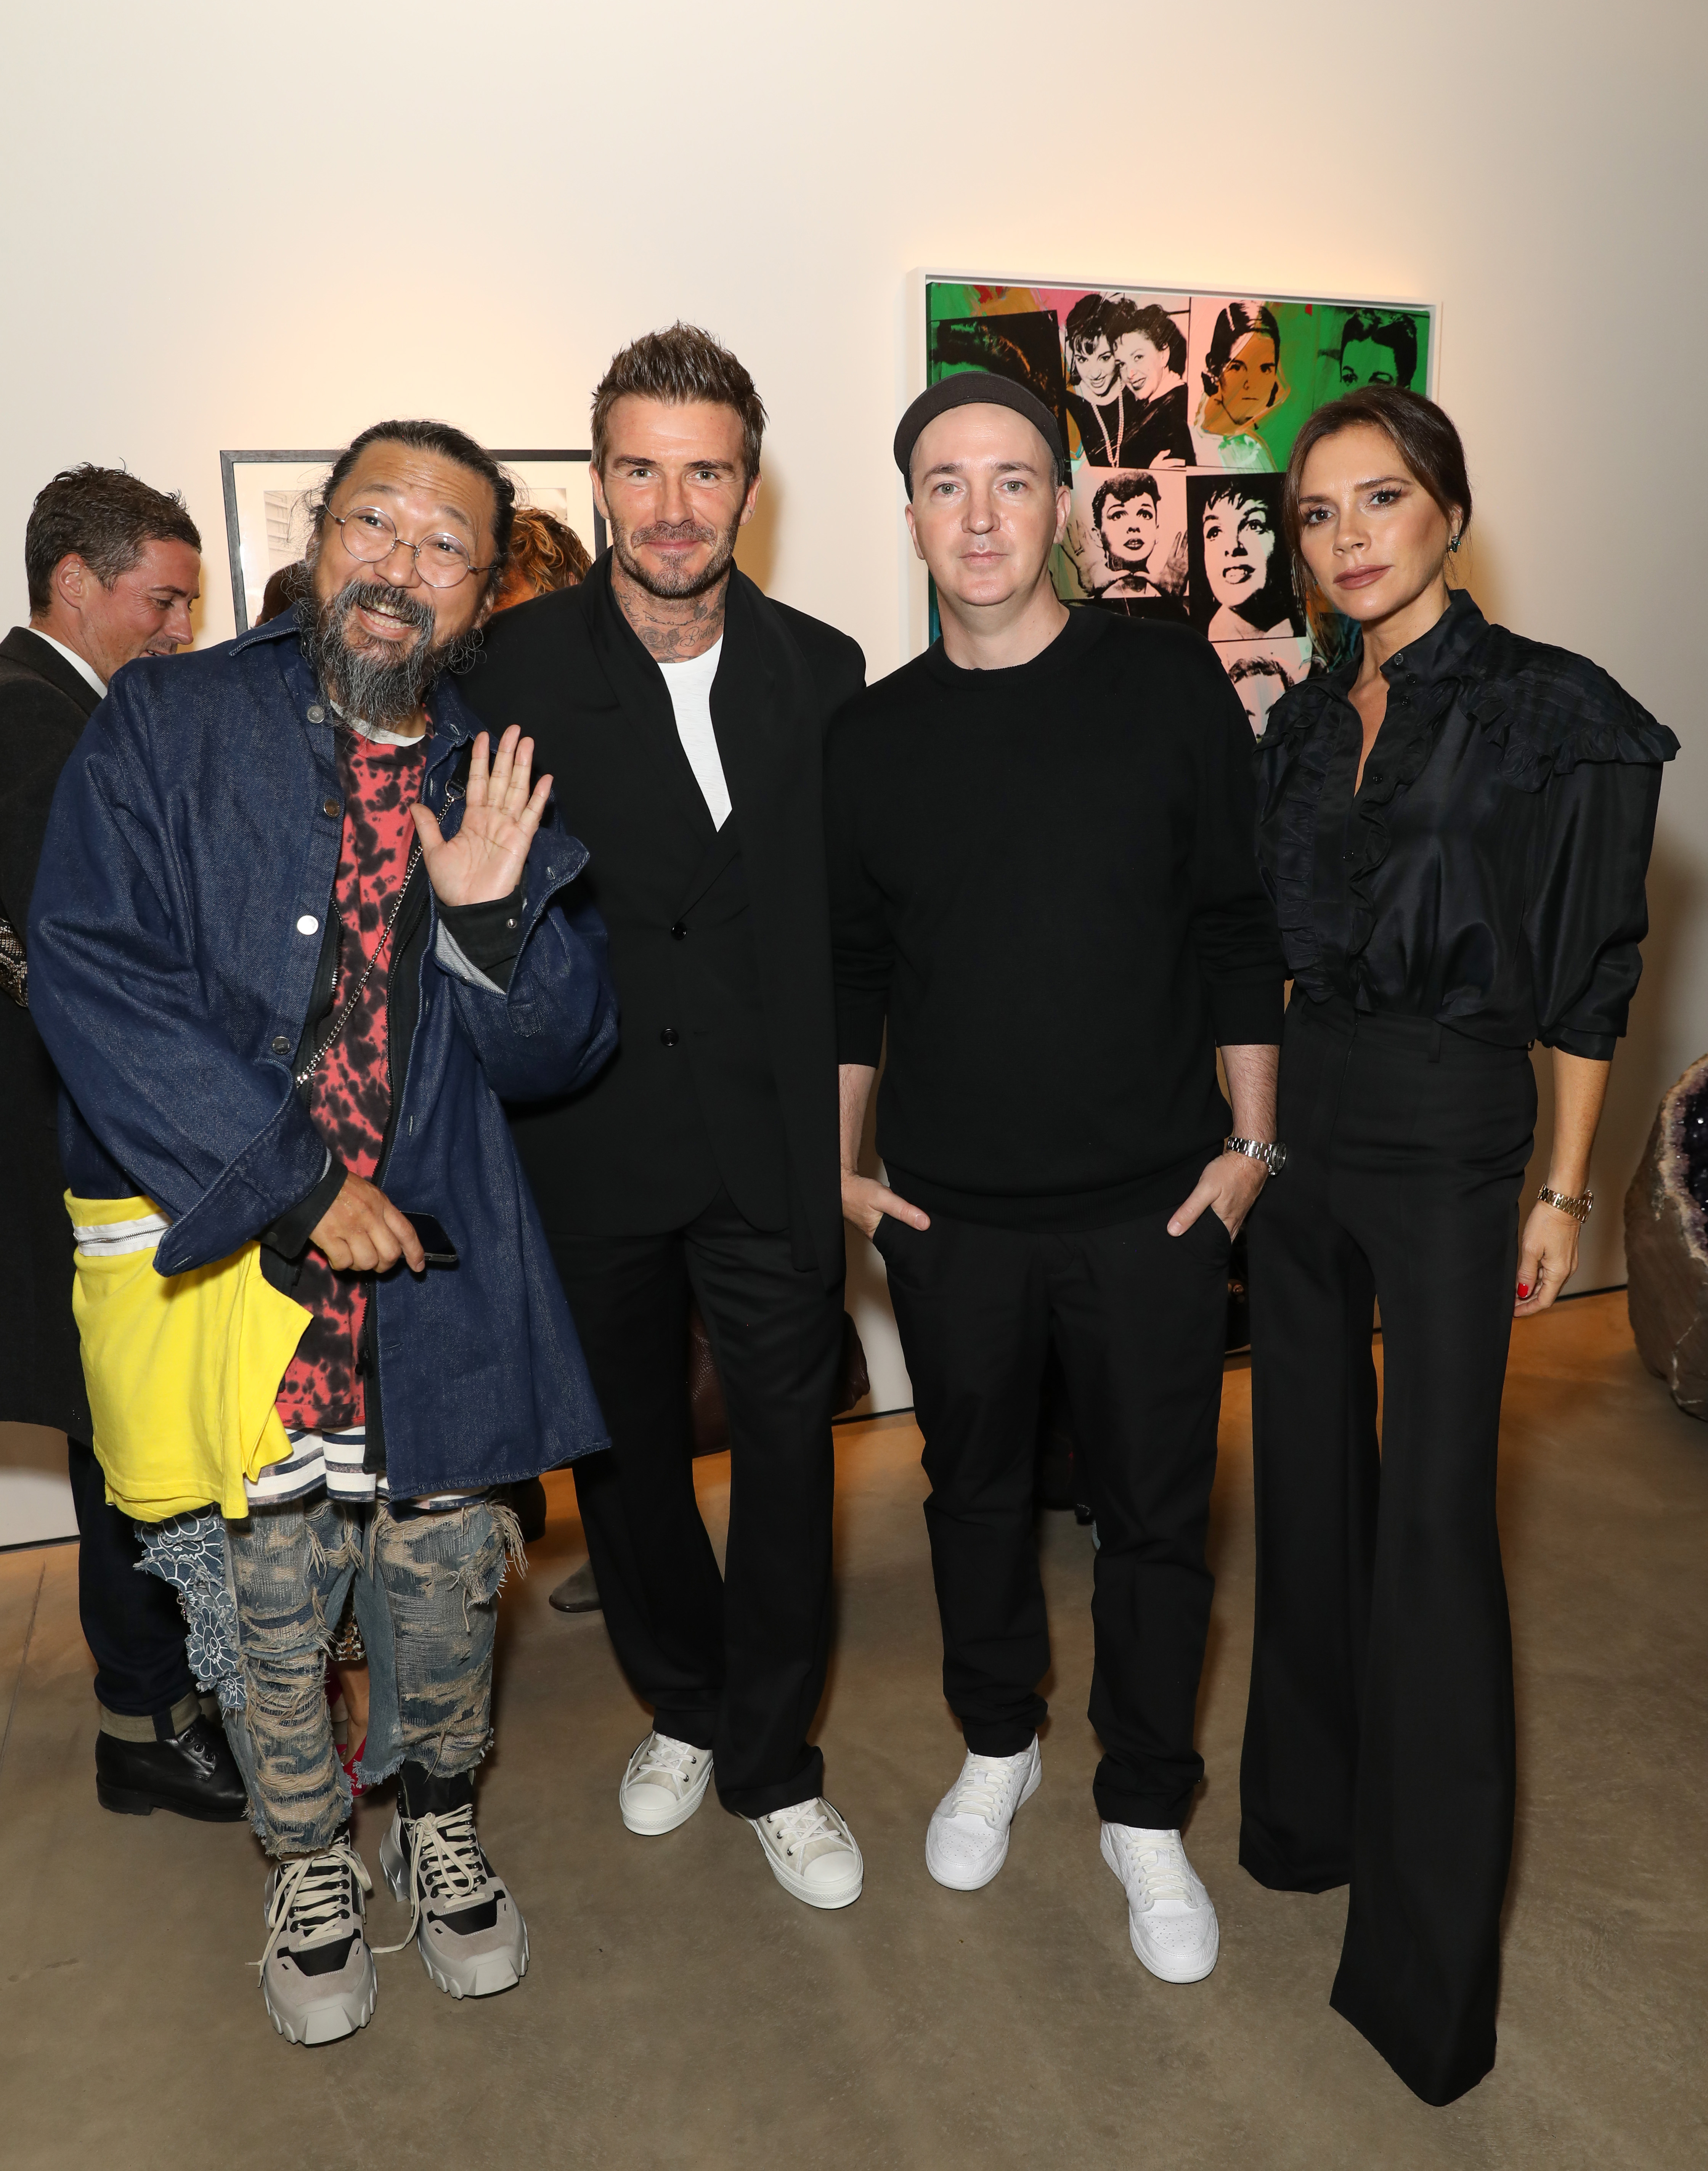 (L-R) Takashi Murakami, David Beckham, Brian Donnelly aka Kaws and Victoria Beckham attend Victoria Beckham and Sotheby's celebration of Andy Warhol with Don Julio 1942 at her Dover Street store.